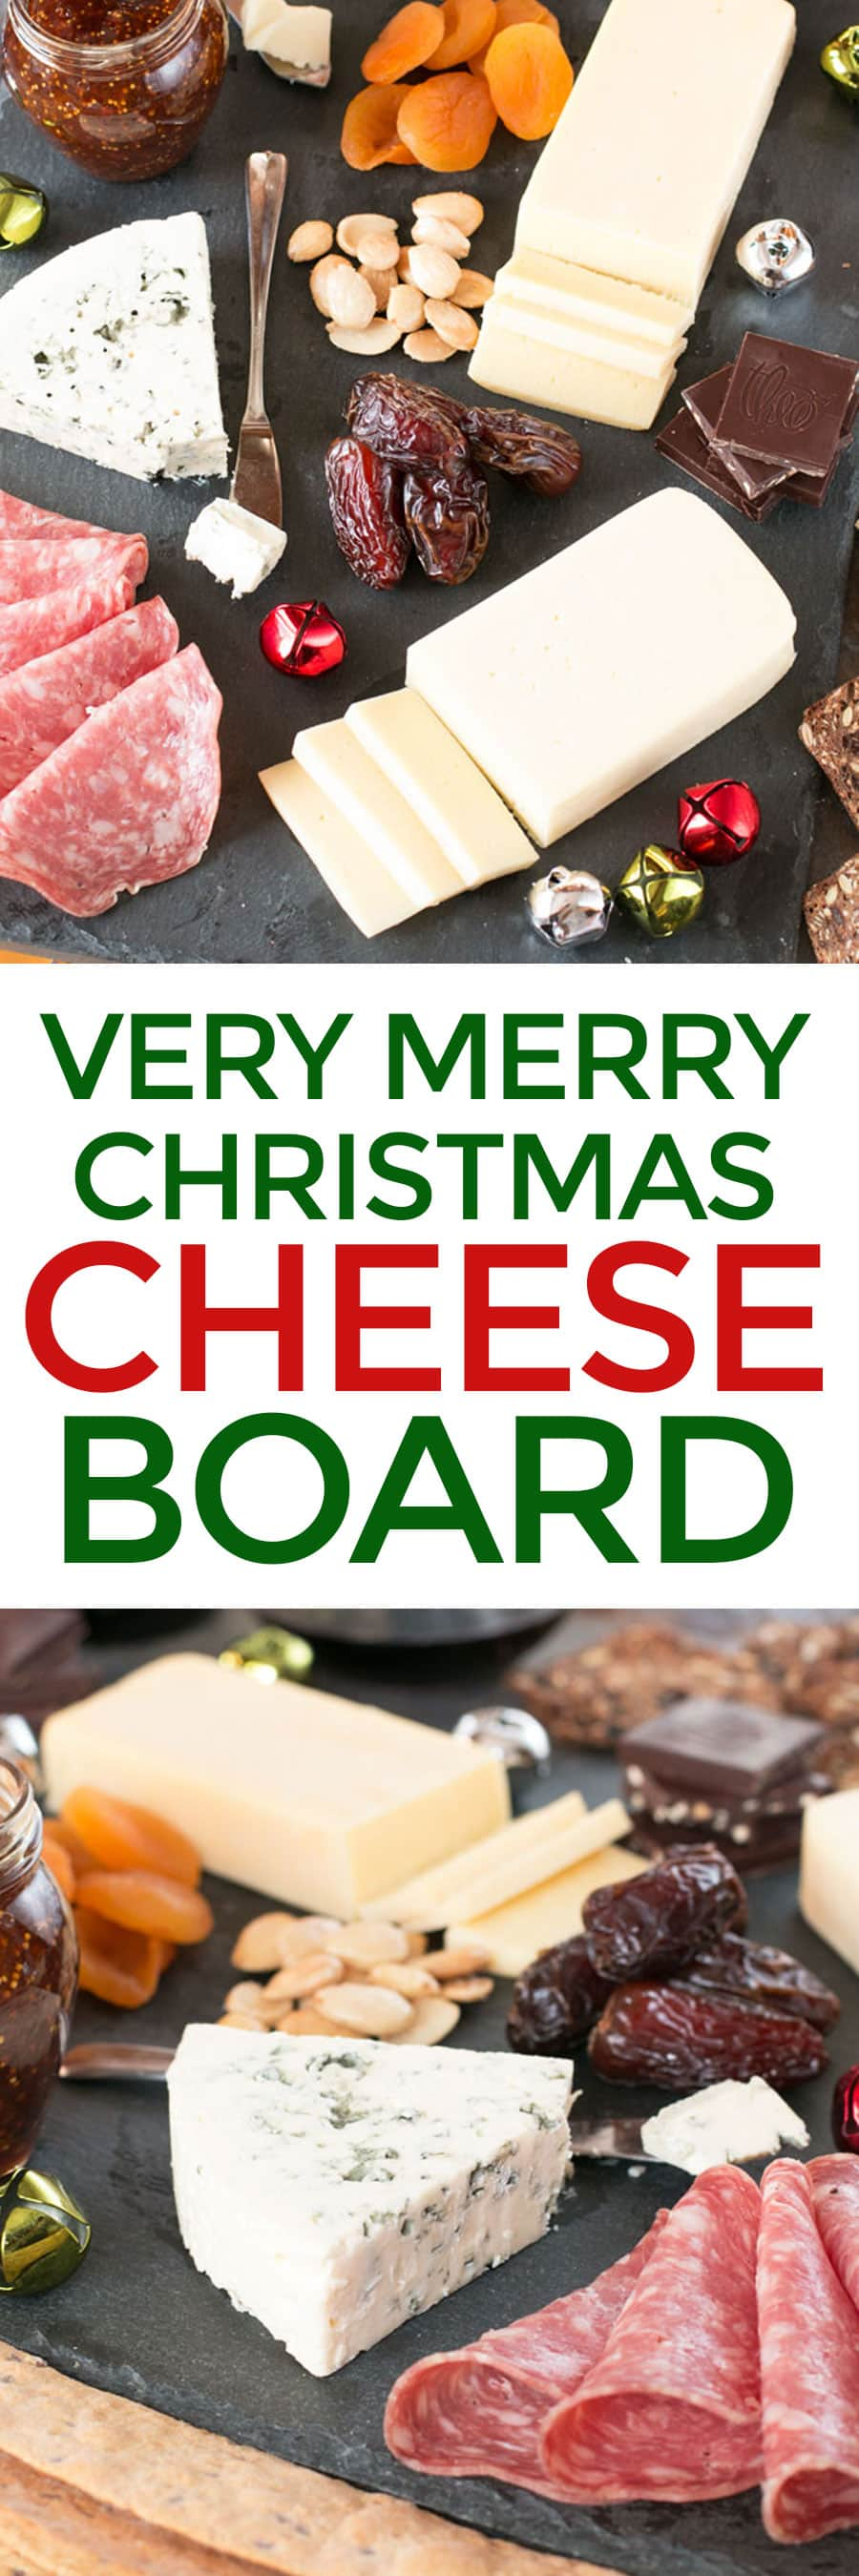 Christmas Cheese Board.Very Merry Christmas Cheese Board Cake N Knife